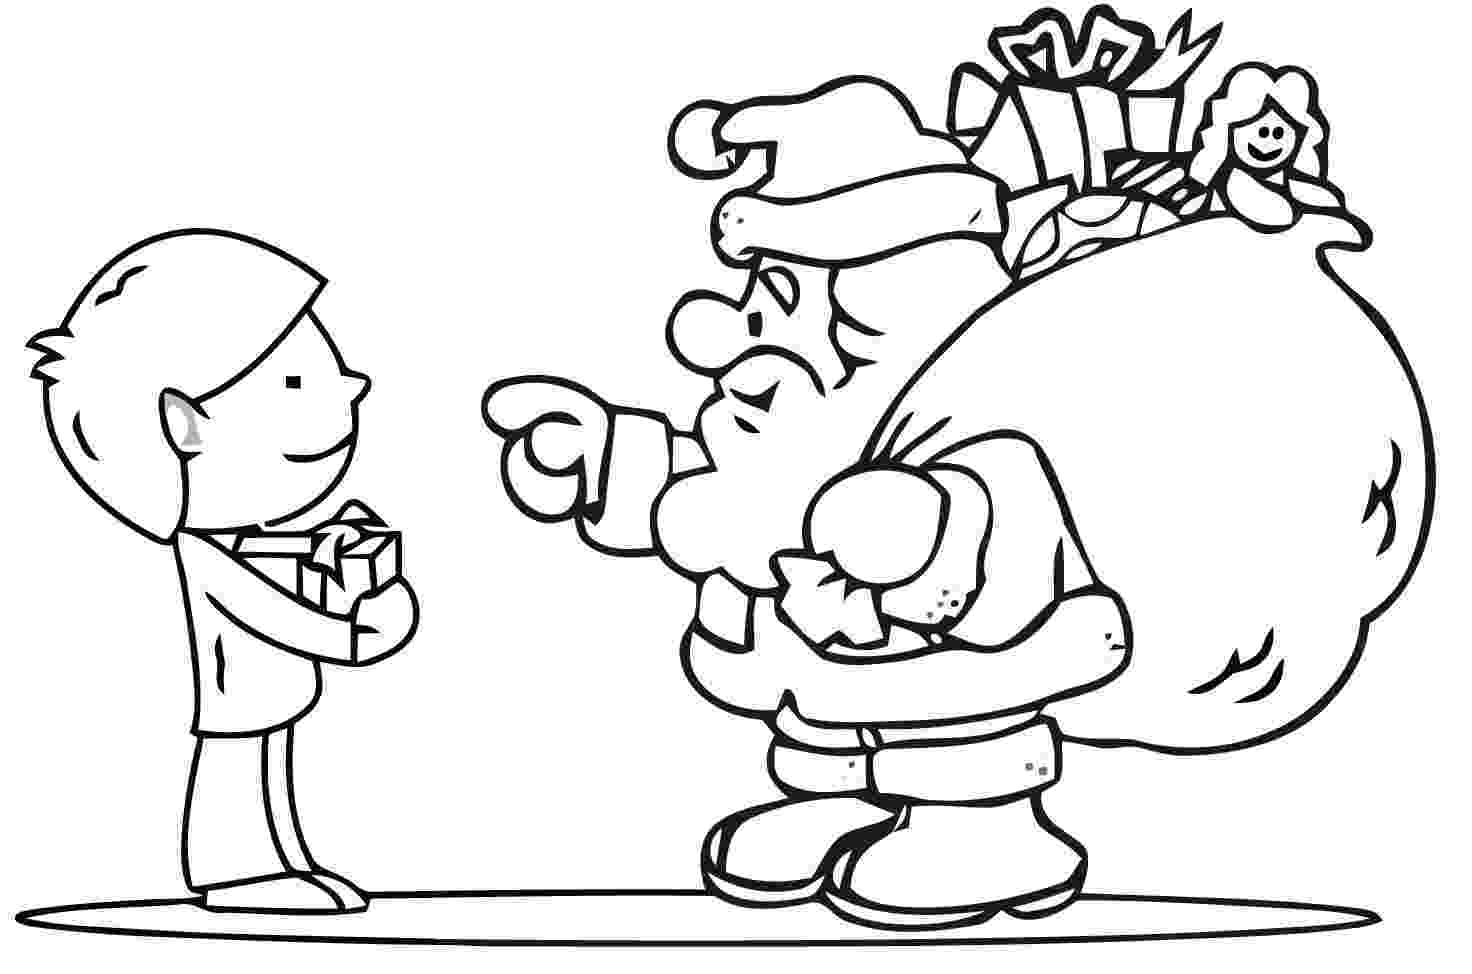 christmas coloring pages to print free free christmas colouring pages for children kids online pages print free coloring christmas to